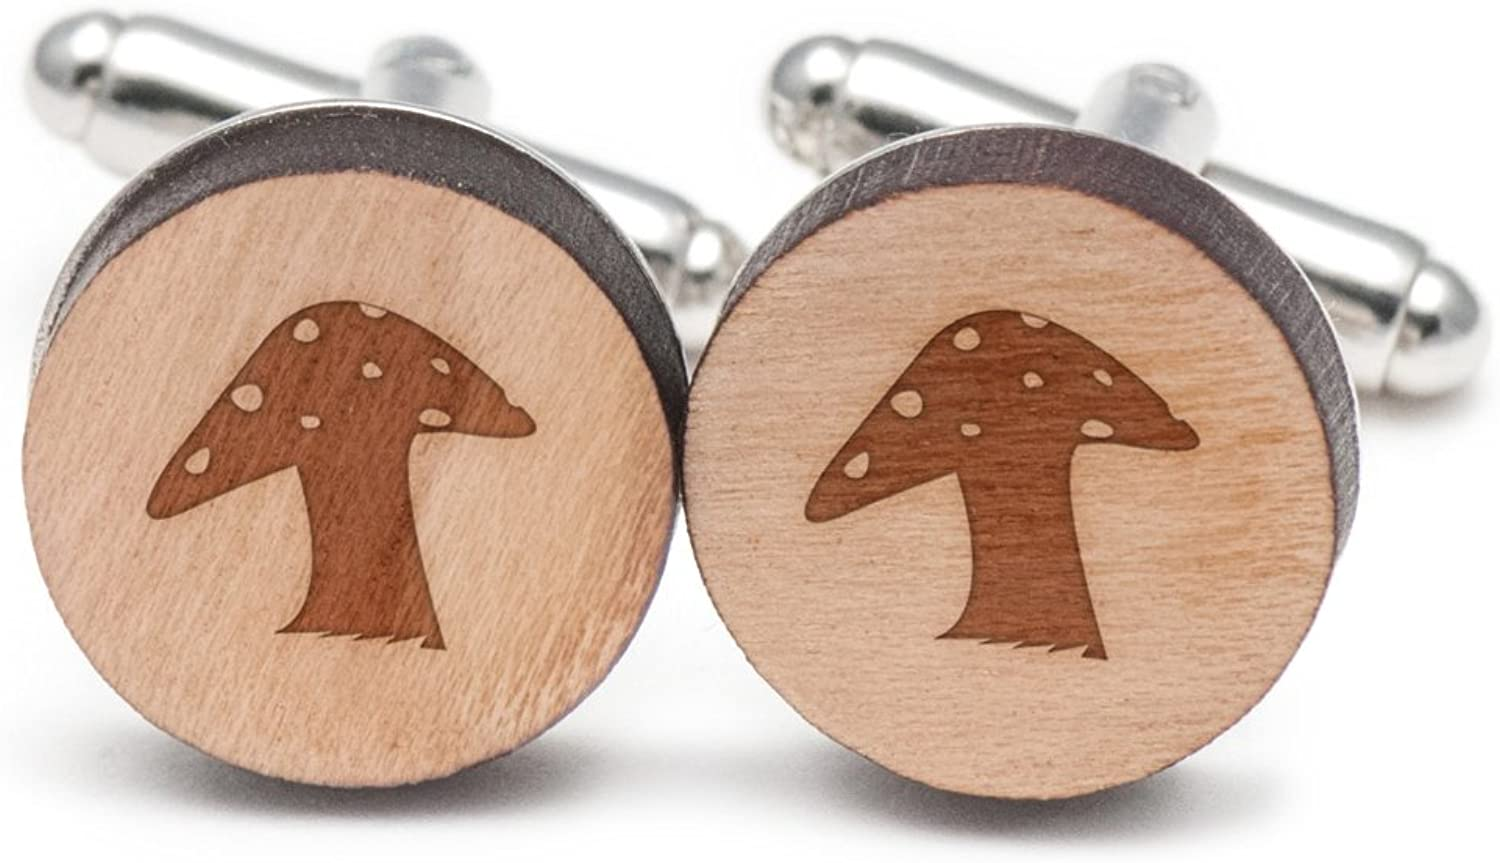 Red Mushroom Cufflinks, Wood Cufflinks Hand Made in the the the USA d34a0c